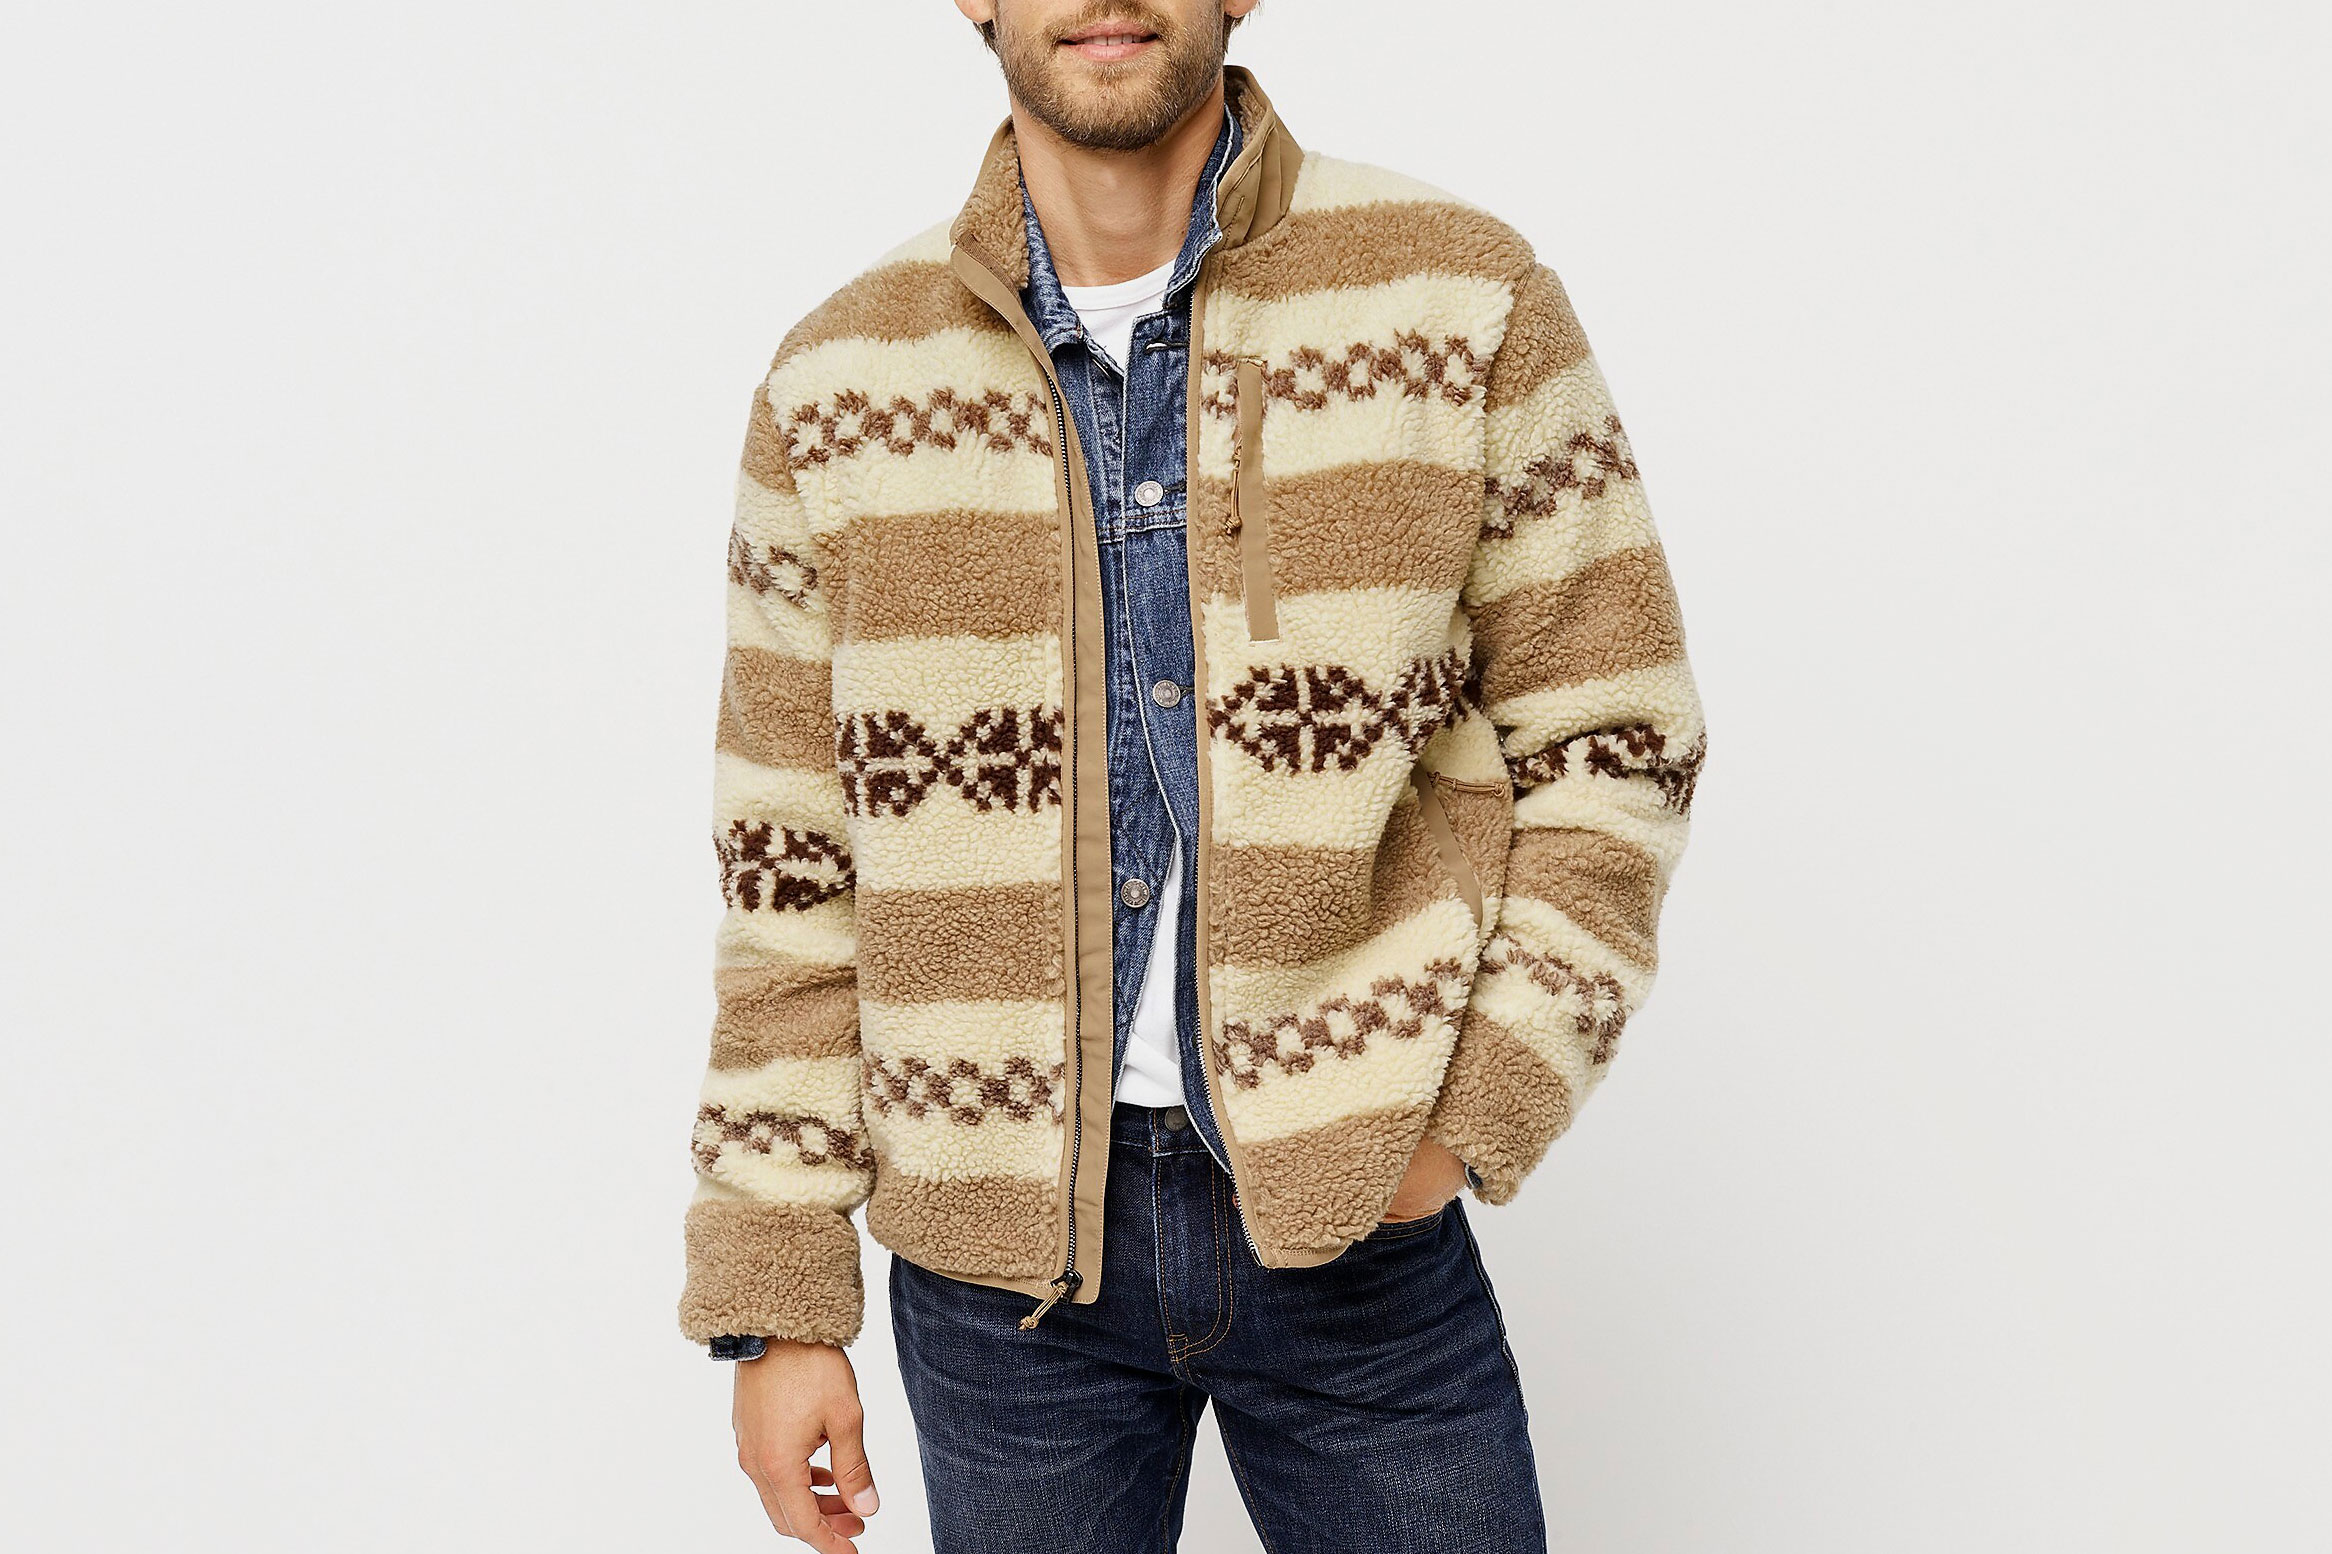 J.Crew Nordic Sherpa Fleece Jacket